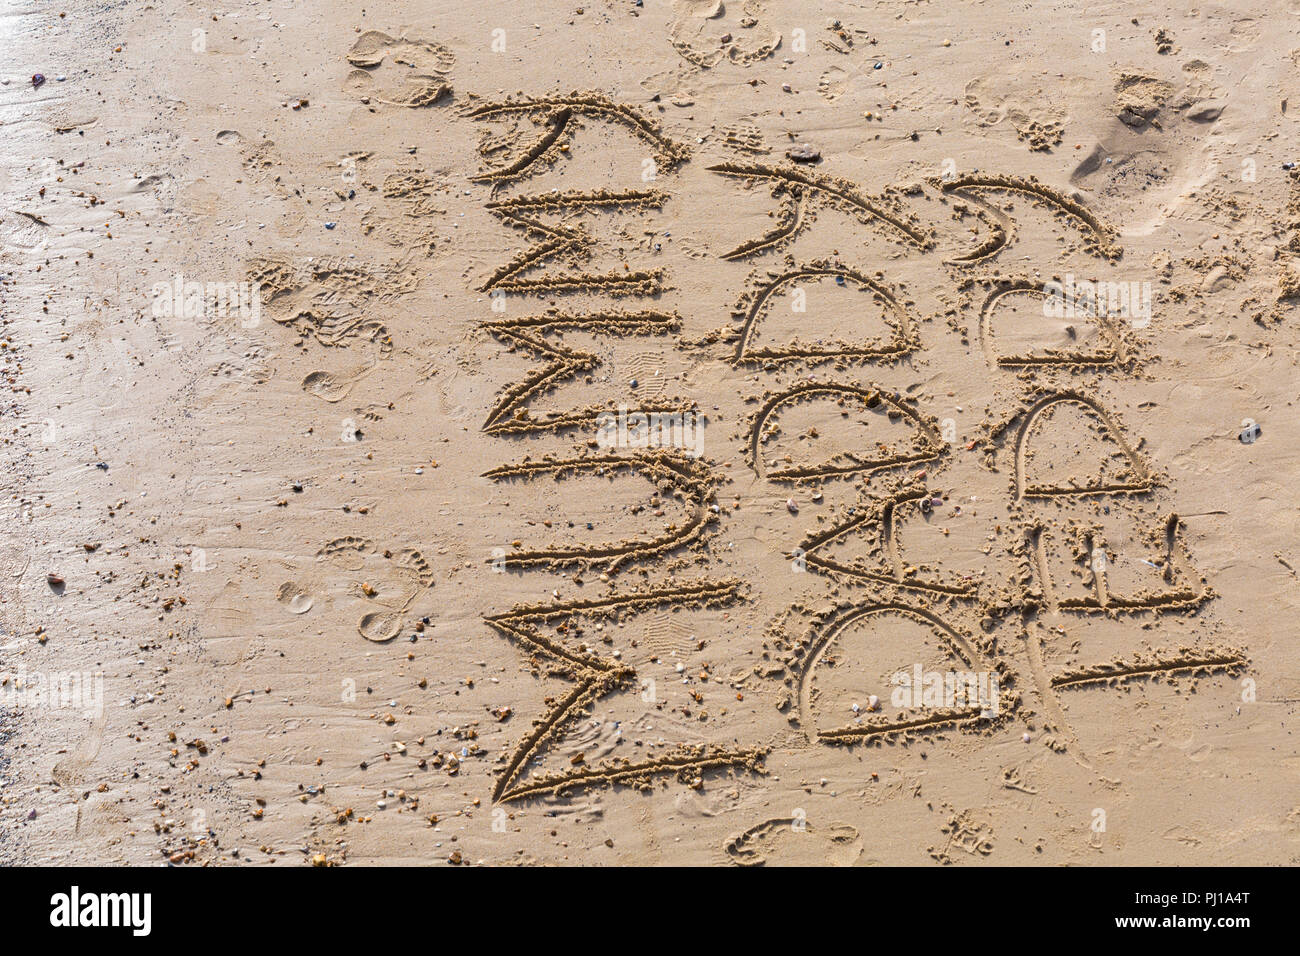 Mummy Daddy Teddy written in the sand on Bournemouth beach at Bournemouth, Dorset UK in September - Stock Image